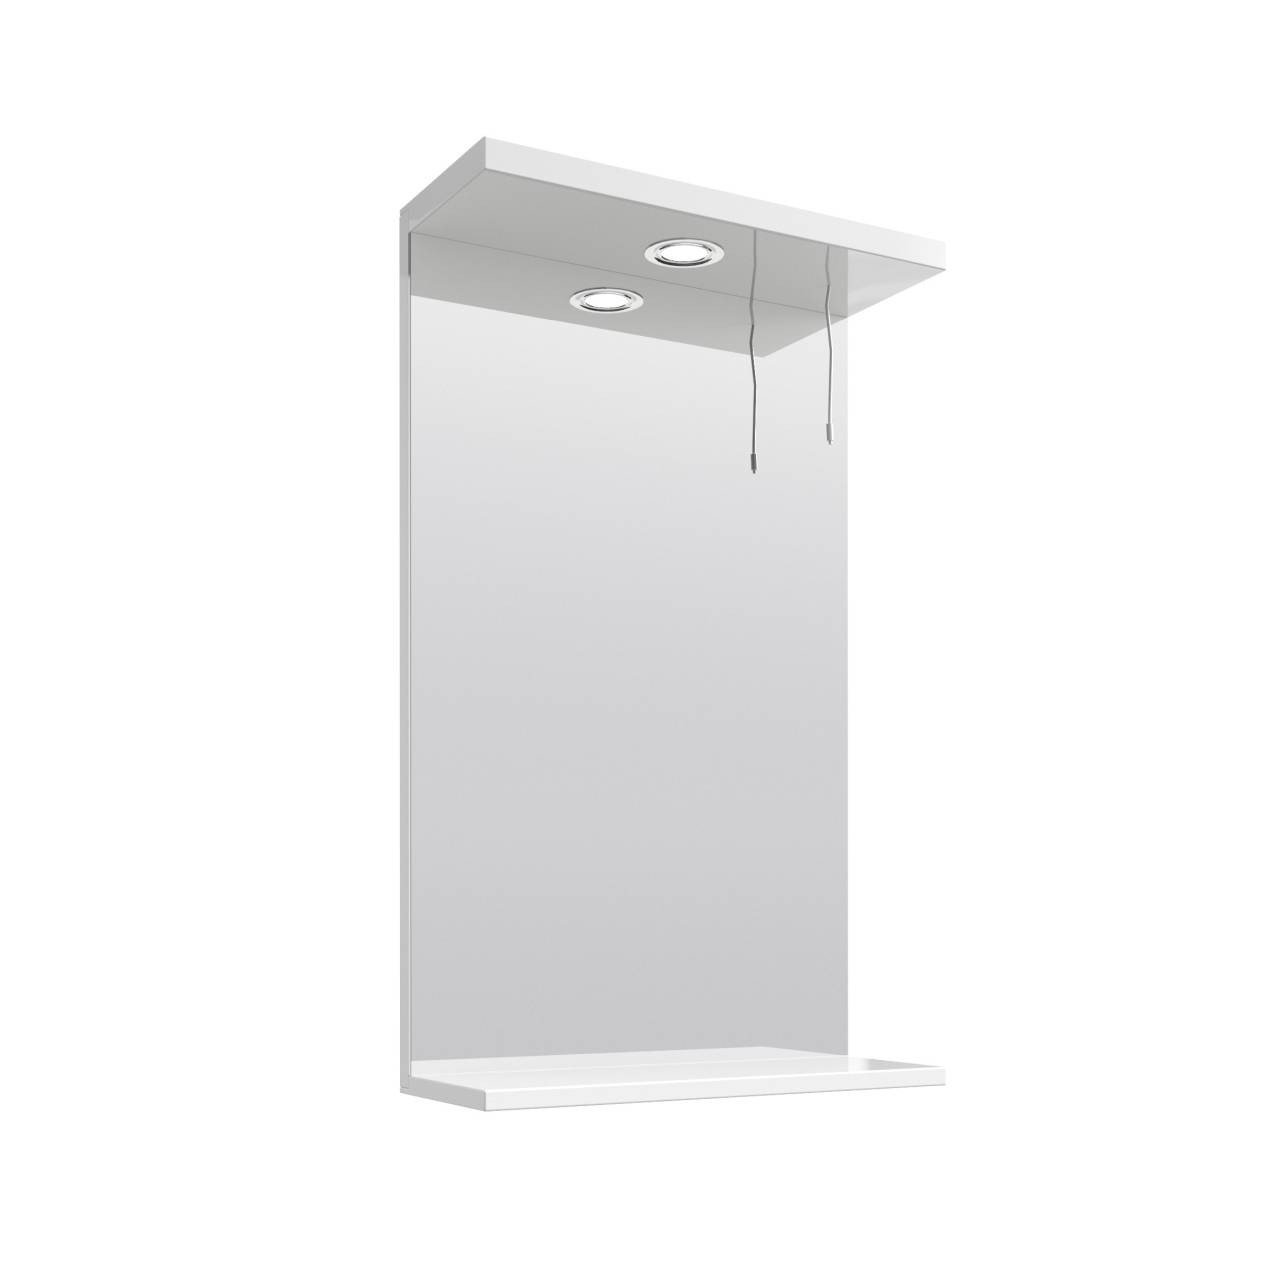 Premier Mayford Gloss White 450mm Mirror with 1 Light - PRC111